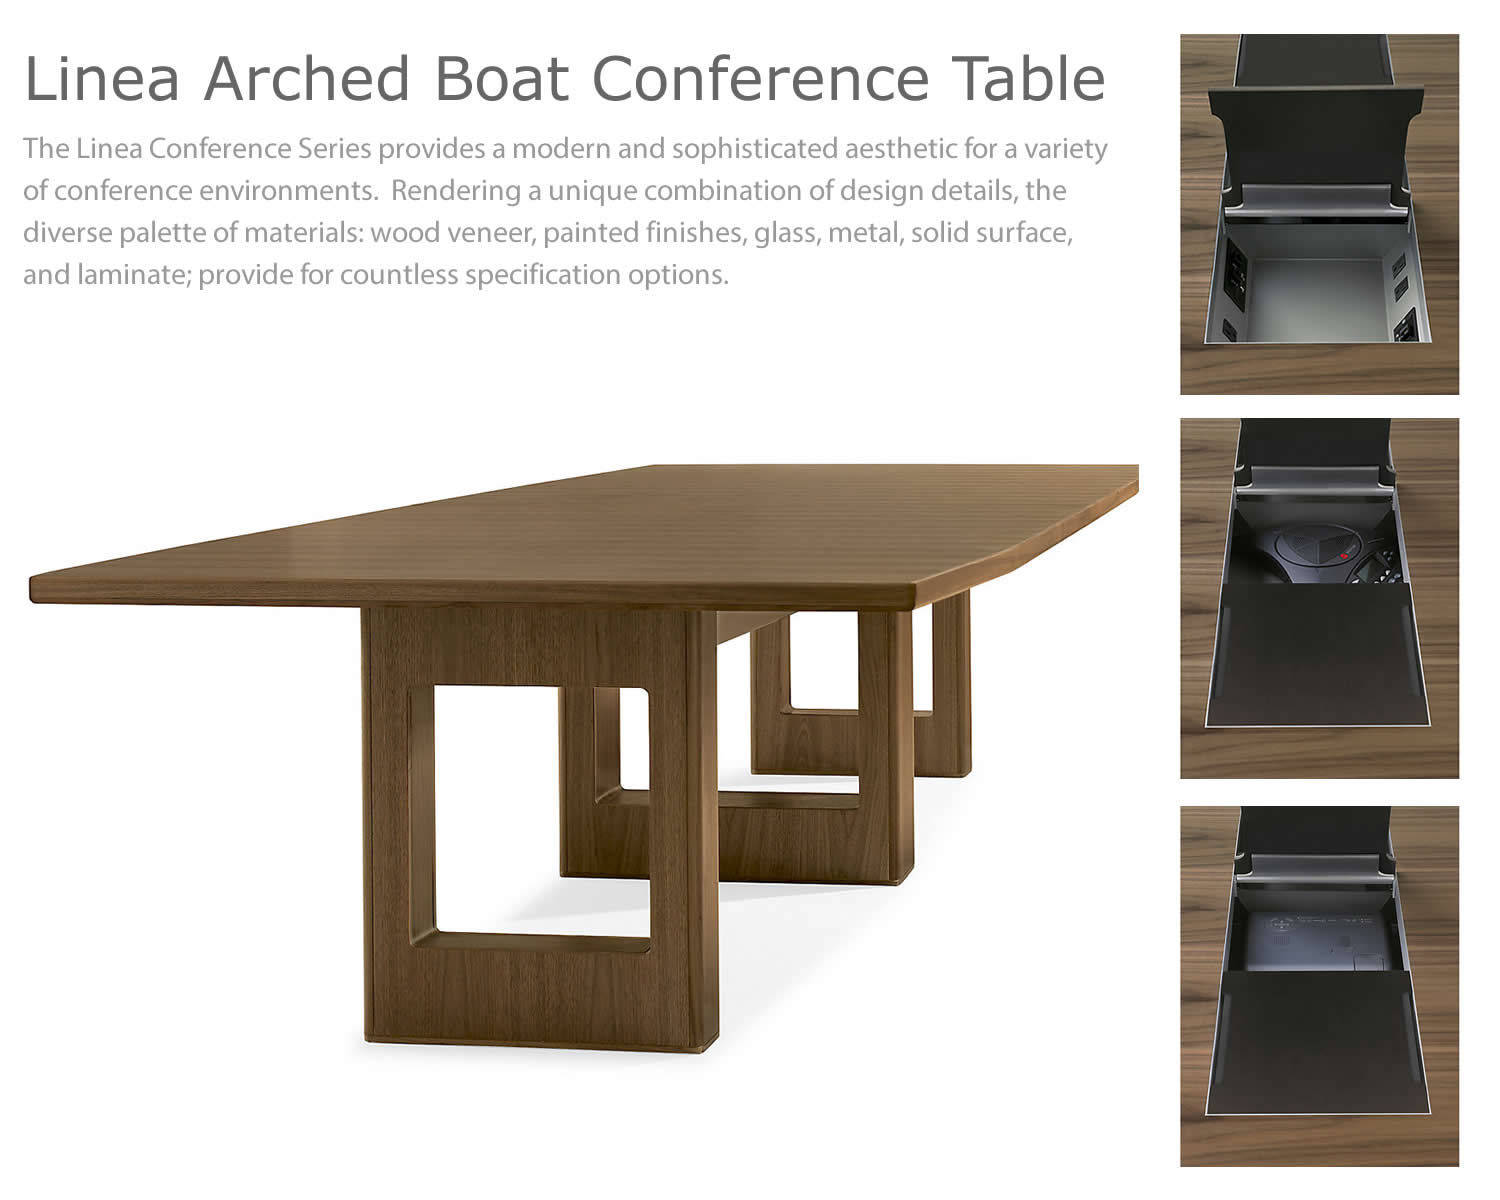 Linea Arched Boat Conference Table View Details